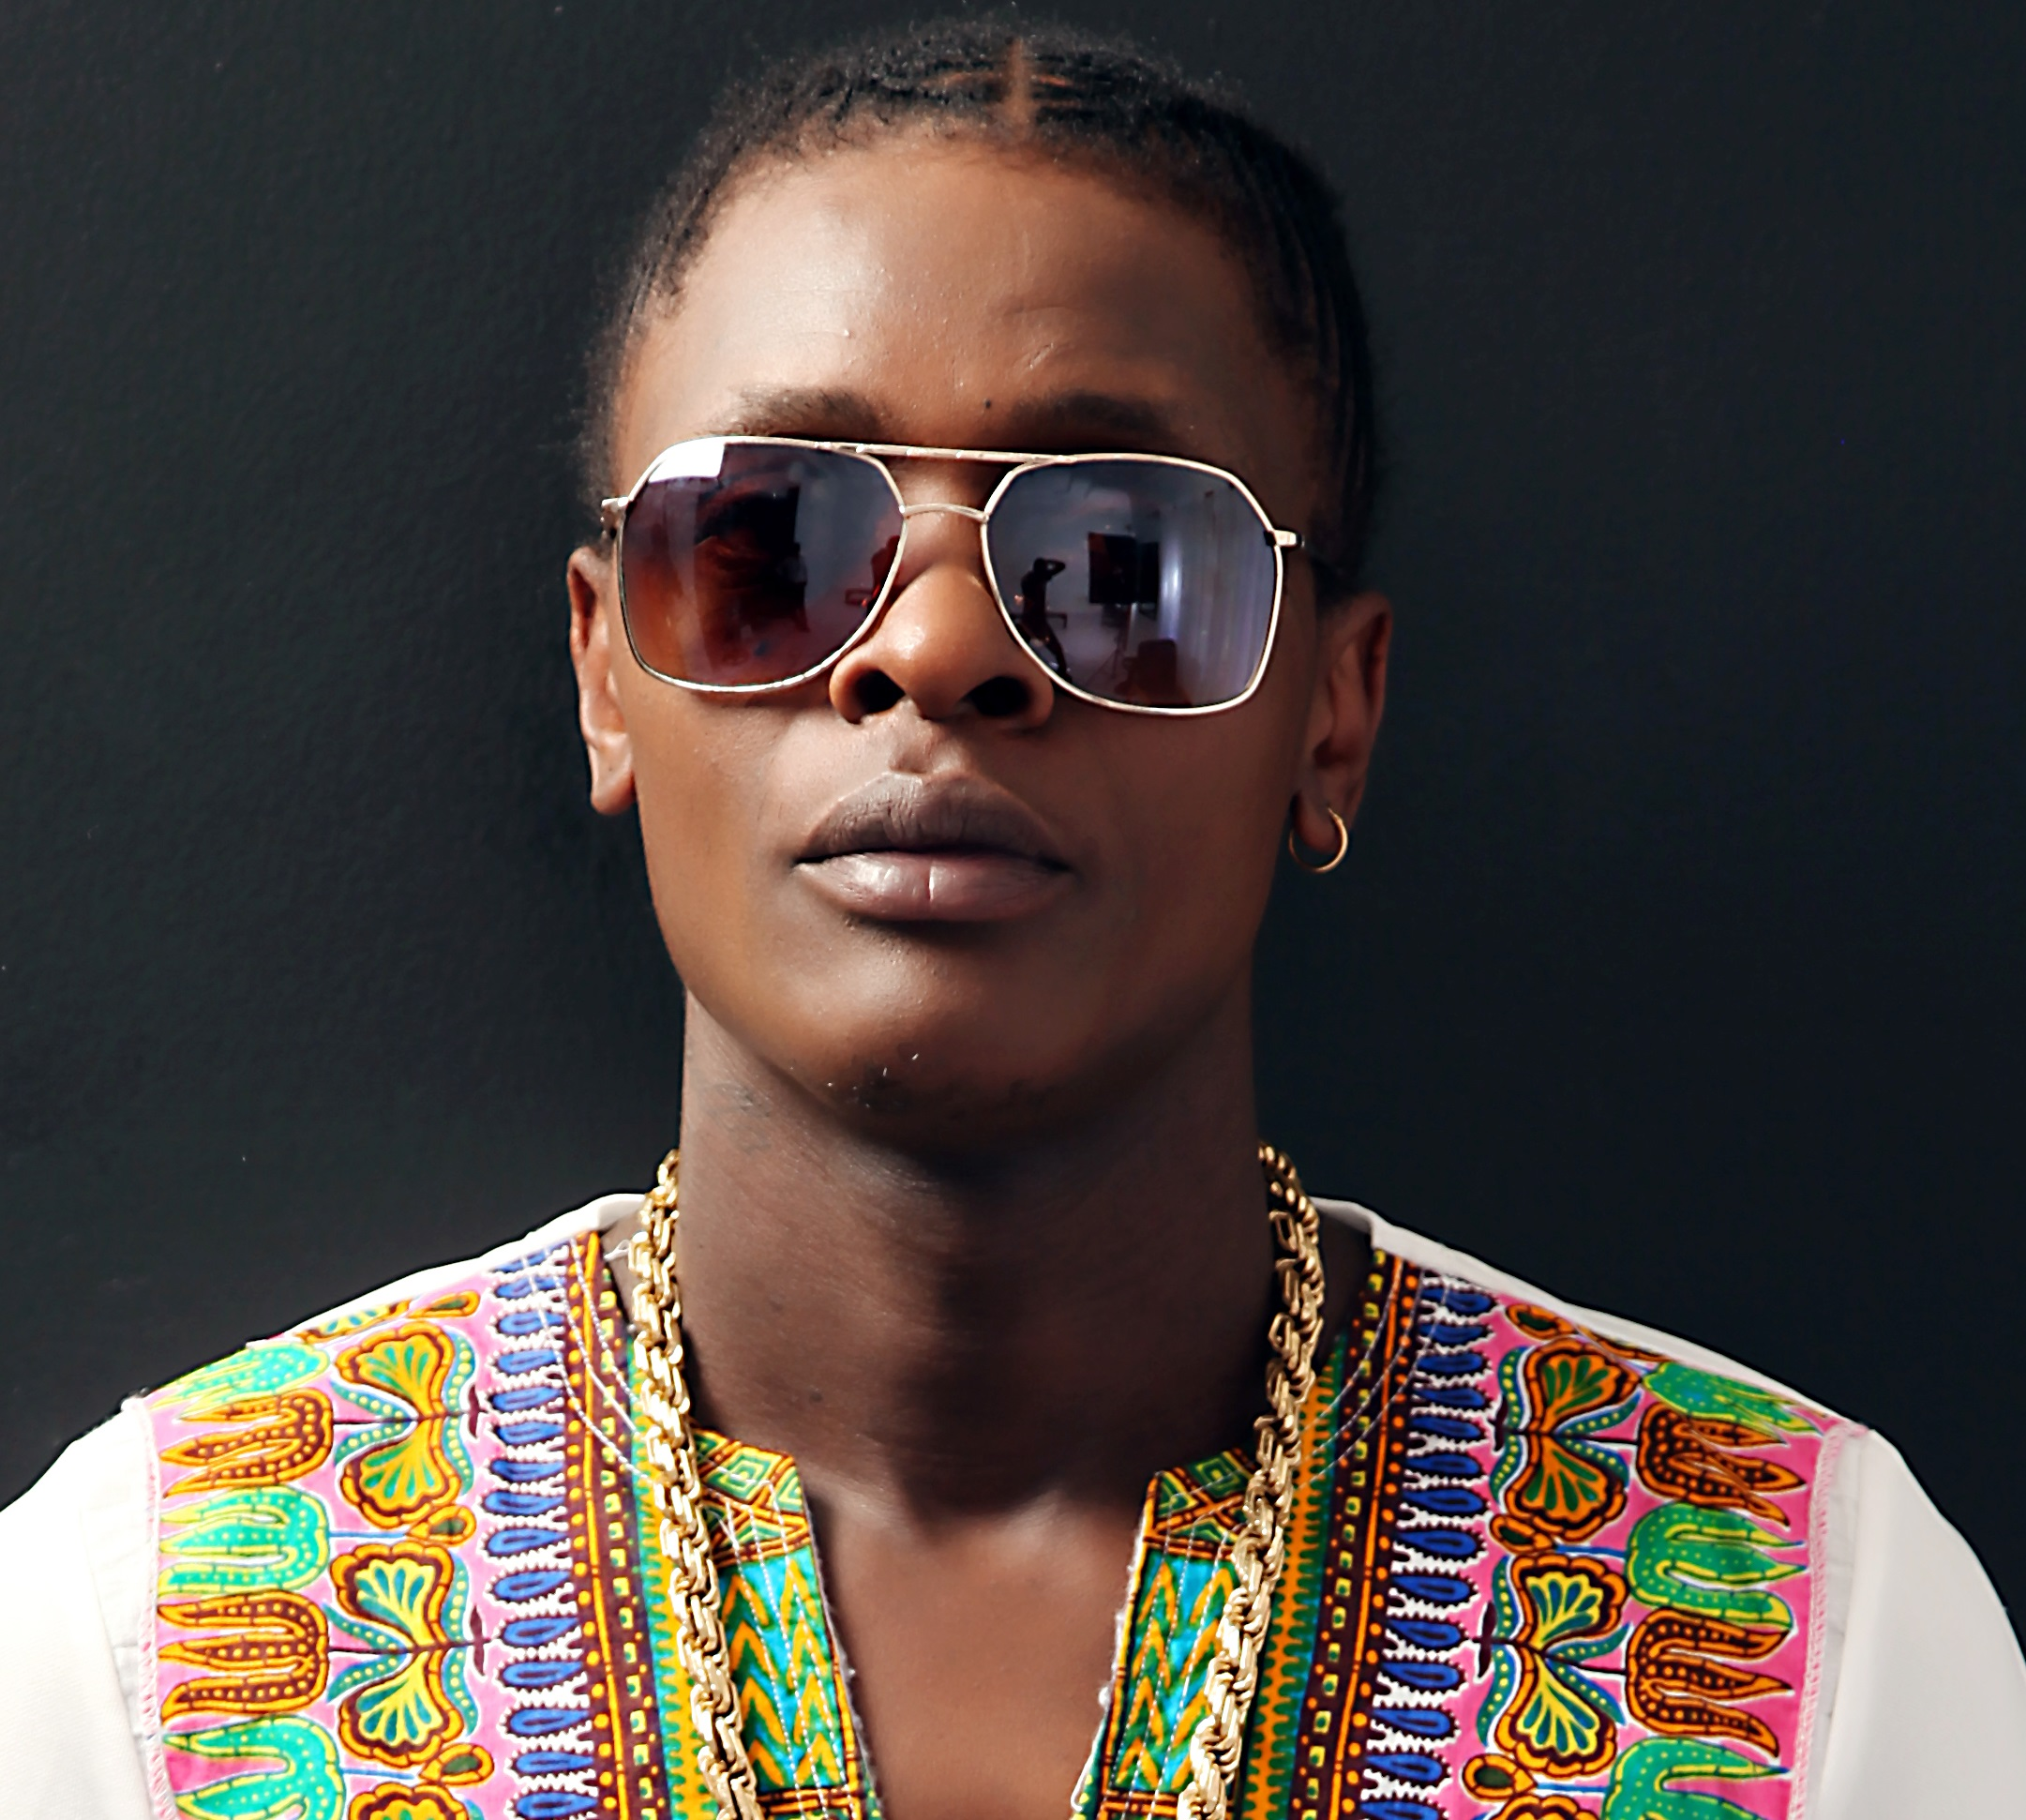 Chameleone: Jose Chameleone's Wale Wale Video Ranked Number 10 On